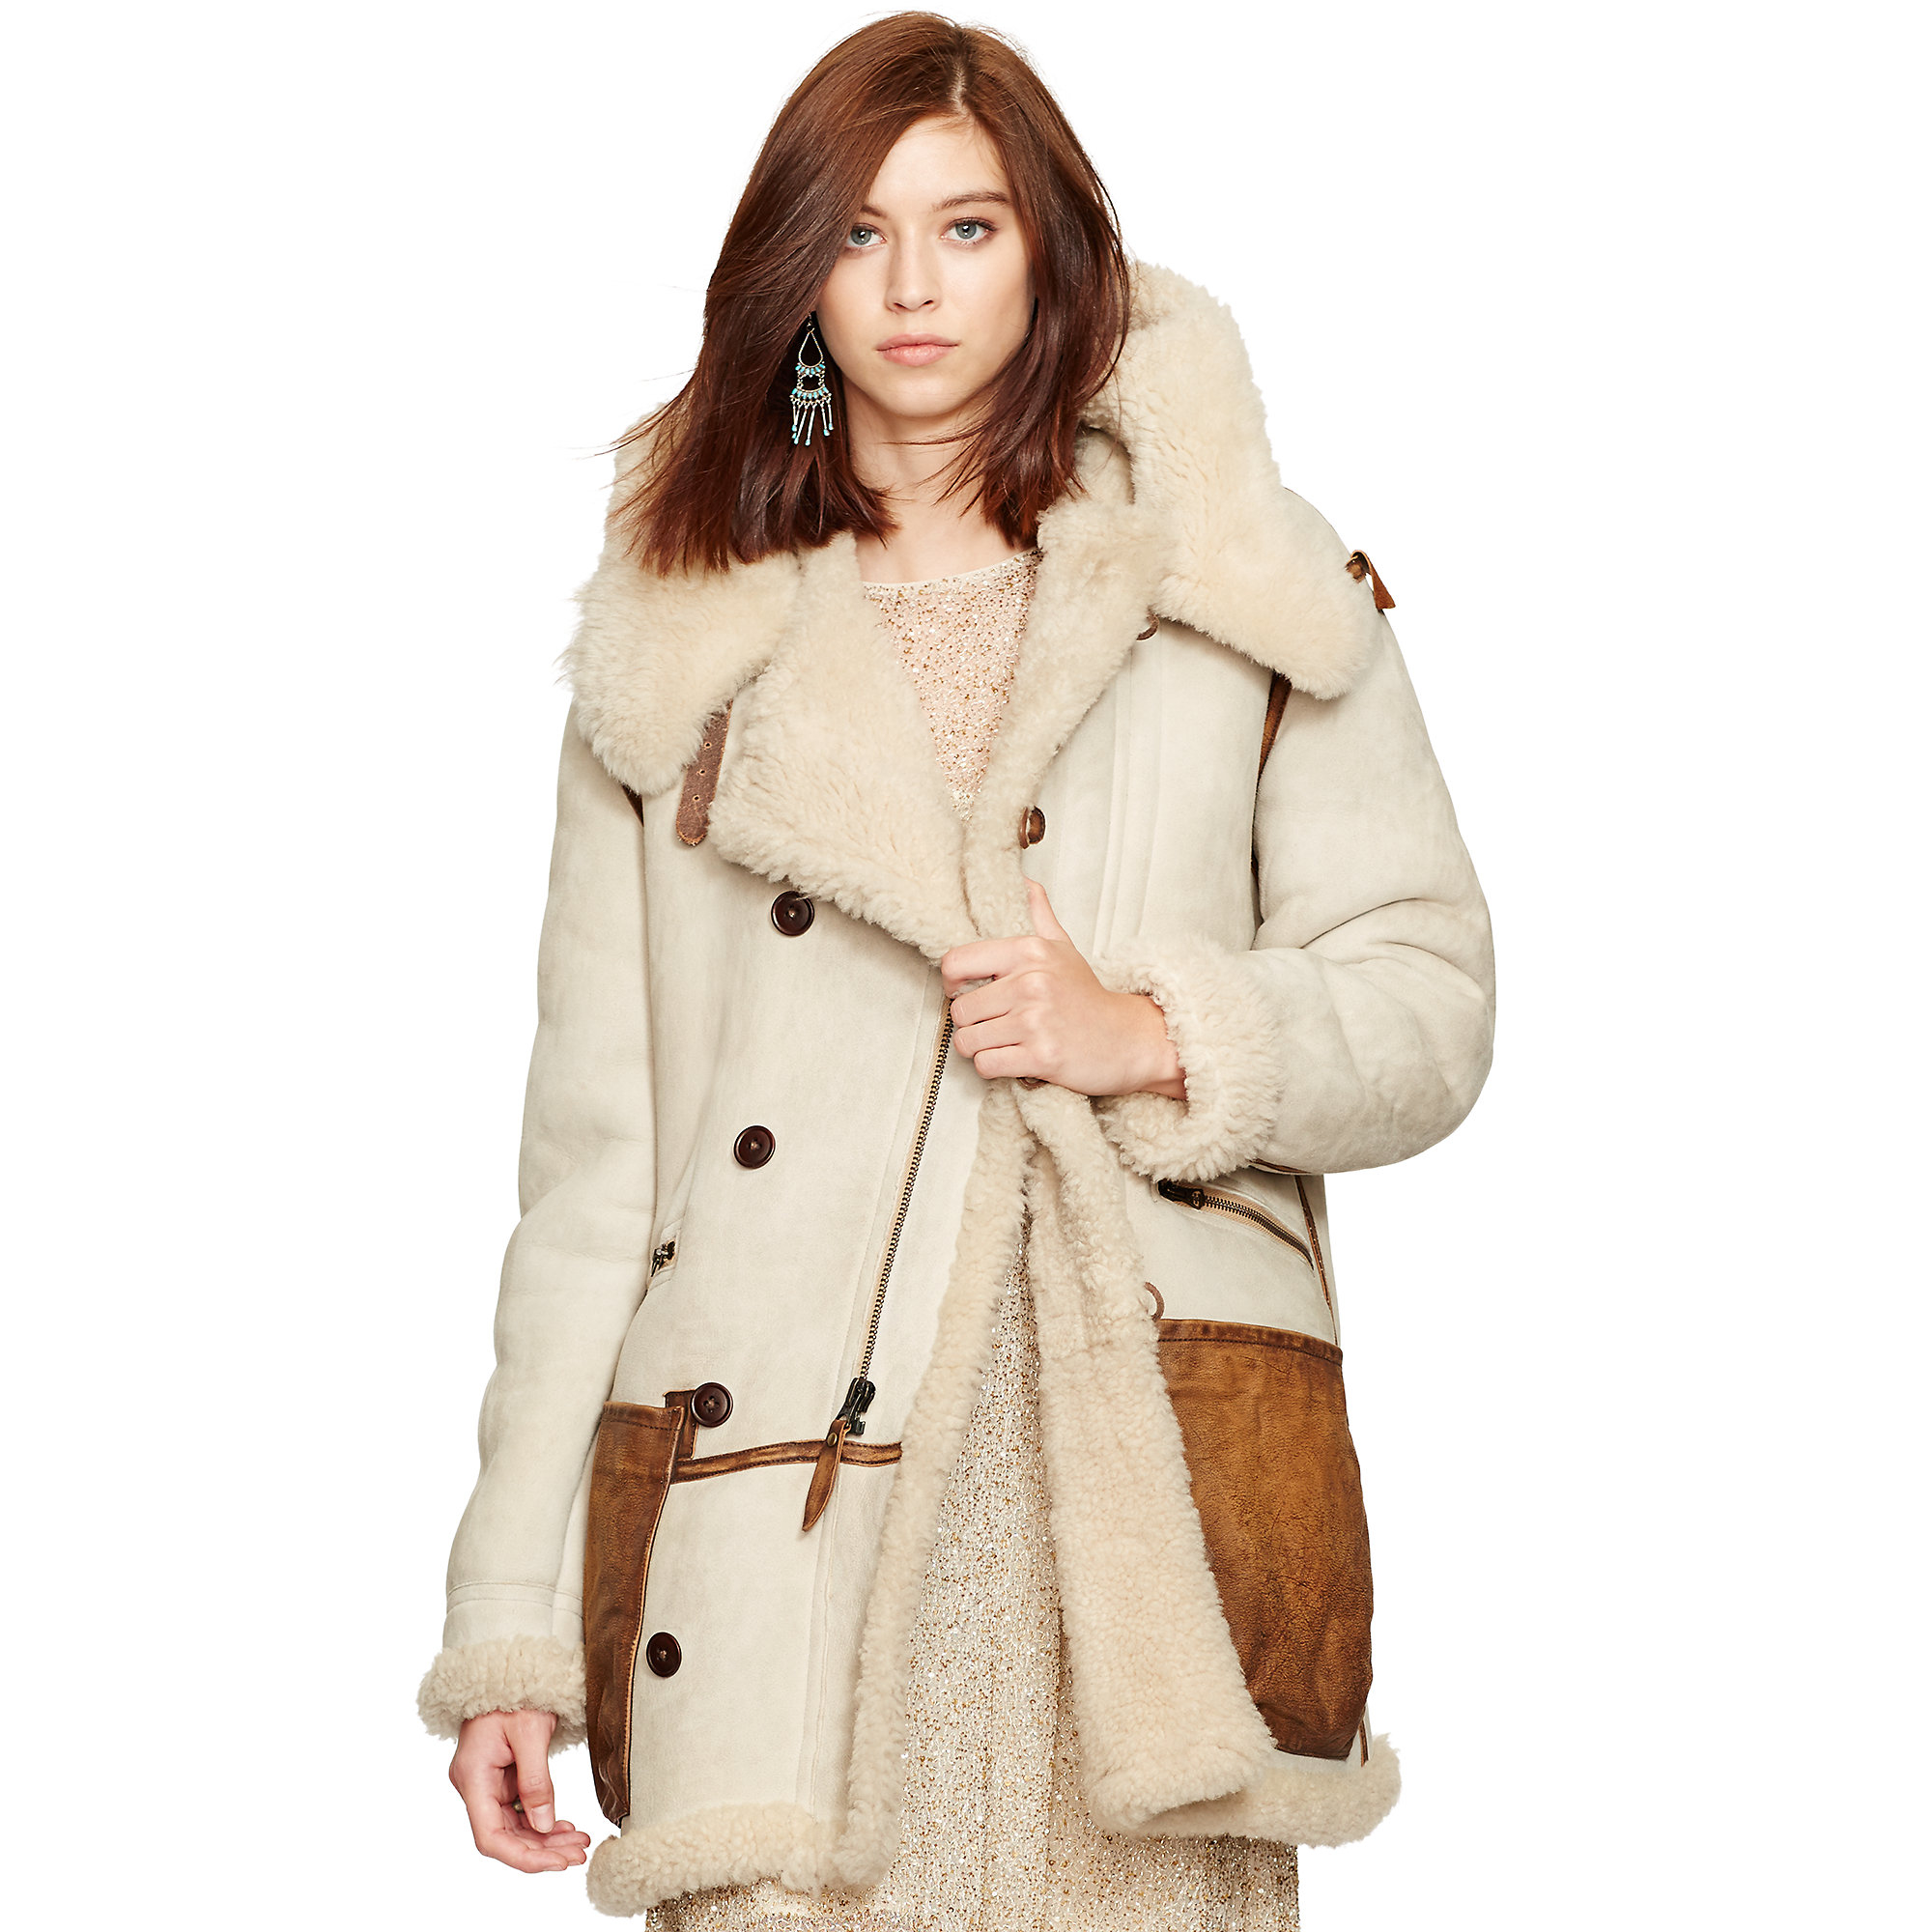 Polo ralph lauren Shearling Leather-trim Coat in Natural | Lyst